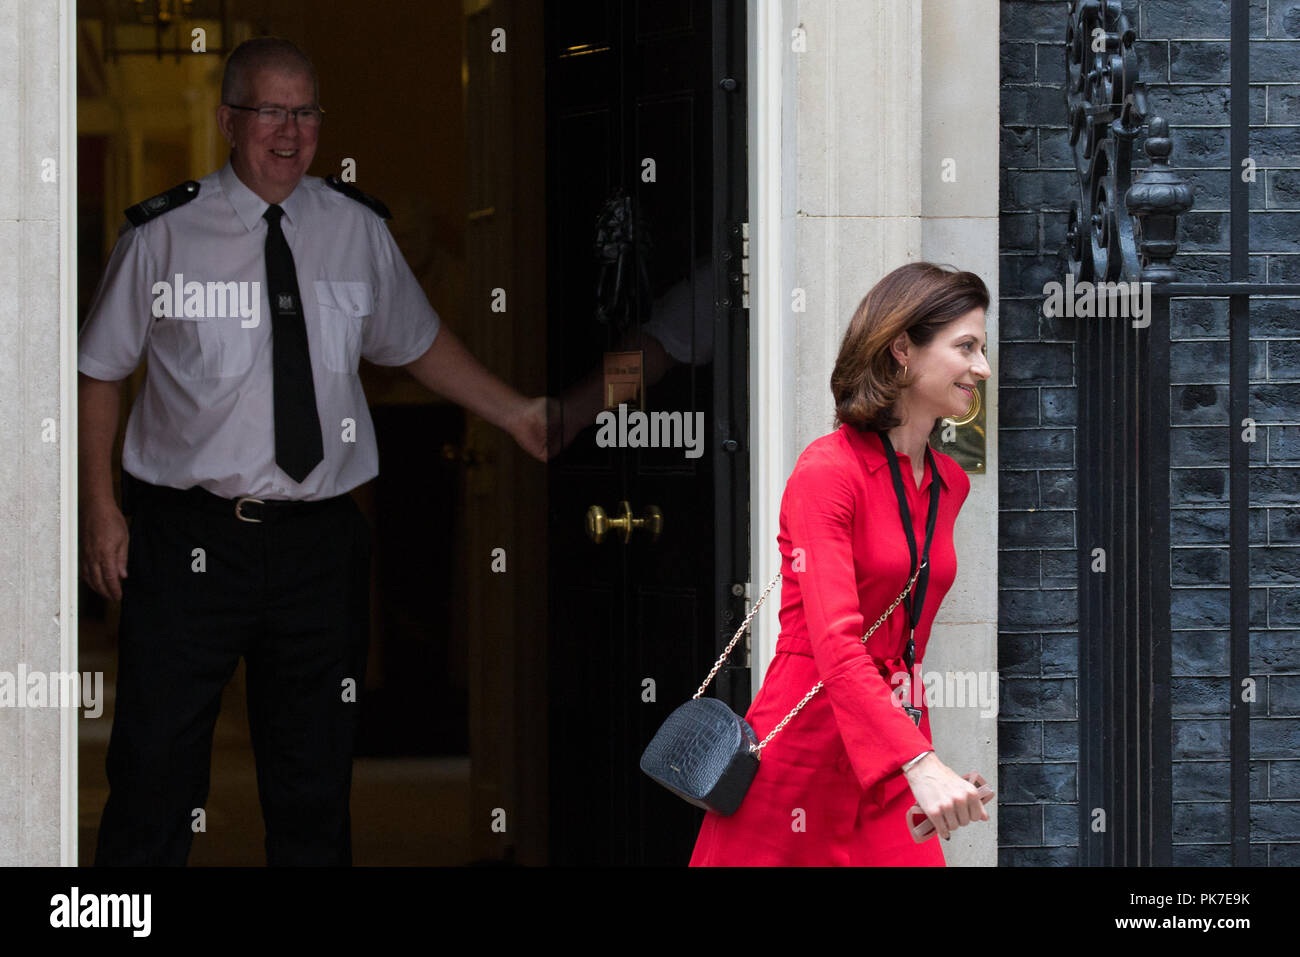 London, UK. 11th September, 2018. Seema Kennedy MP, Parliamentary Private Secretary to the Prime Minister, leaves 10 Downing Street following a Cabinet meeting. Credit: Mark Kerrison/Alamy Live News - Stock Image